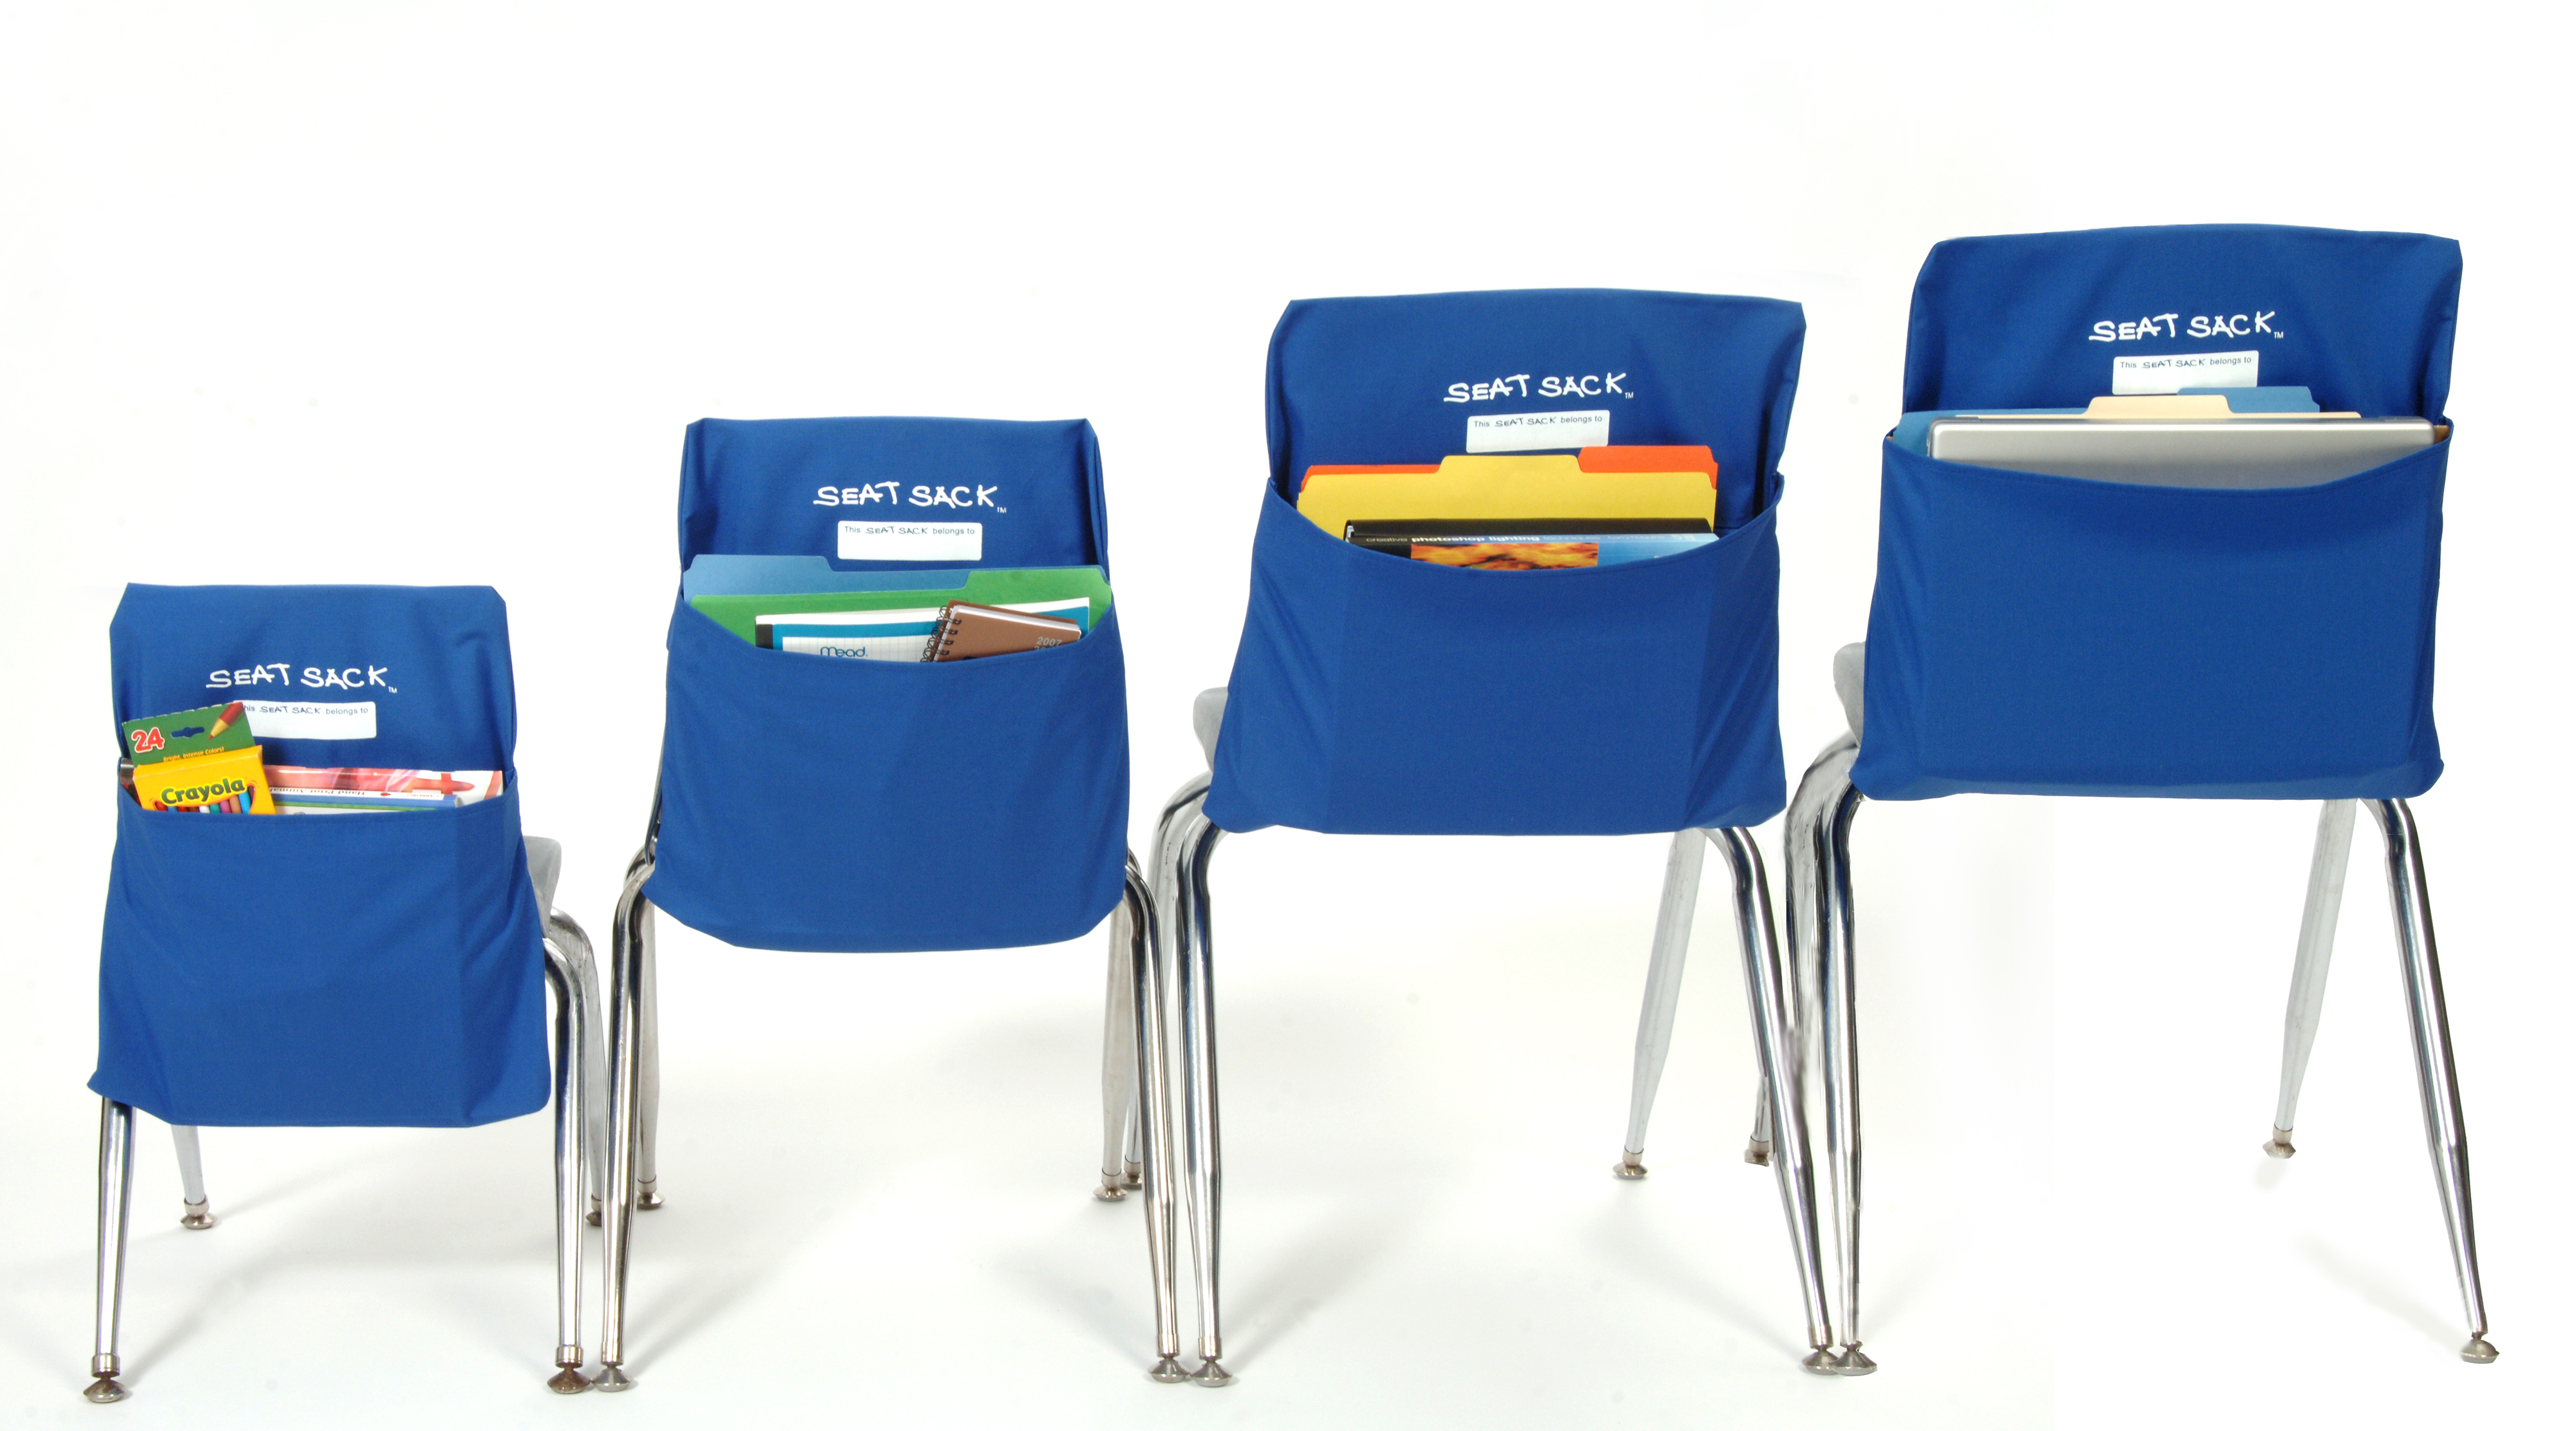 Seat Sack Offers Tips on Making A BacktoSchool Shopping List